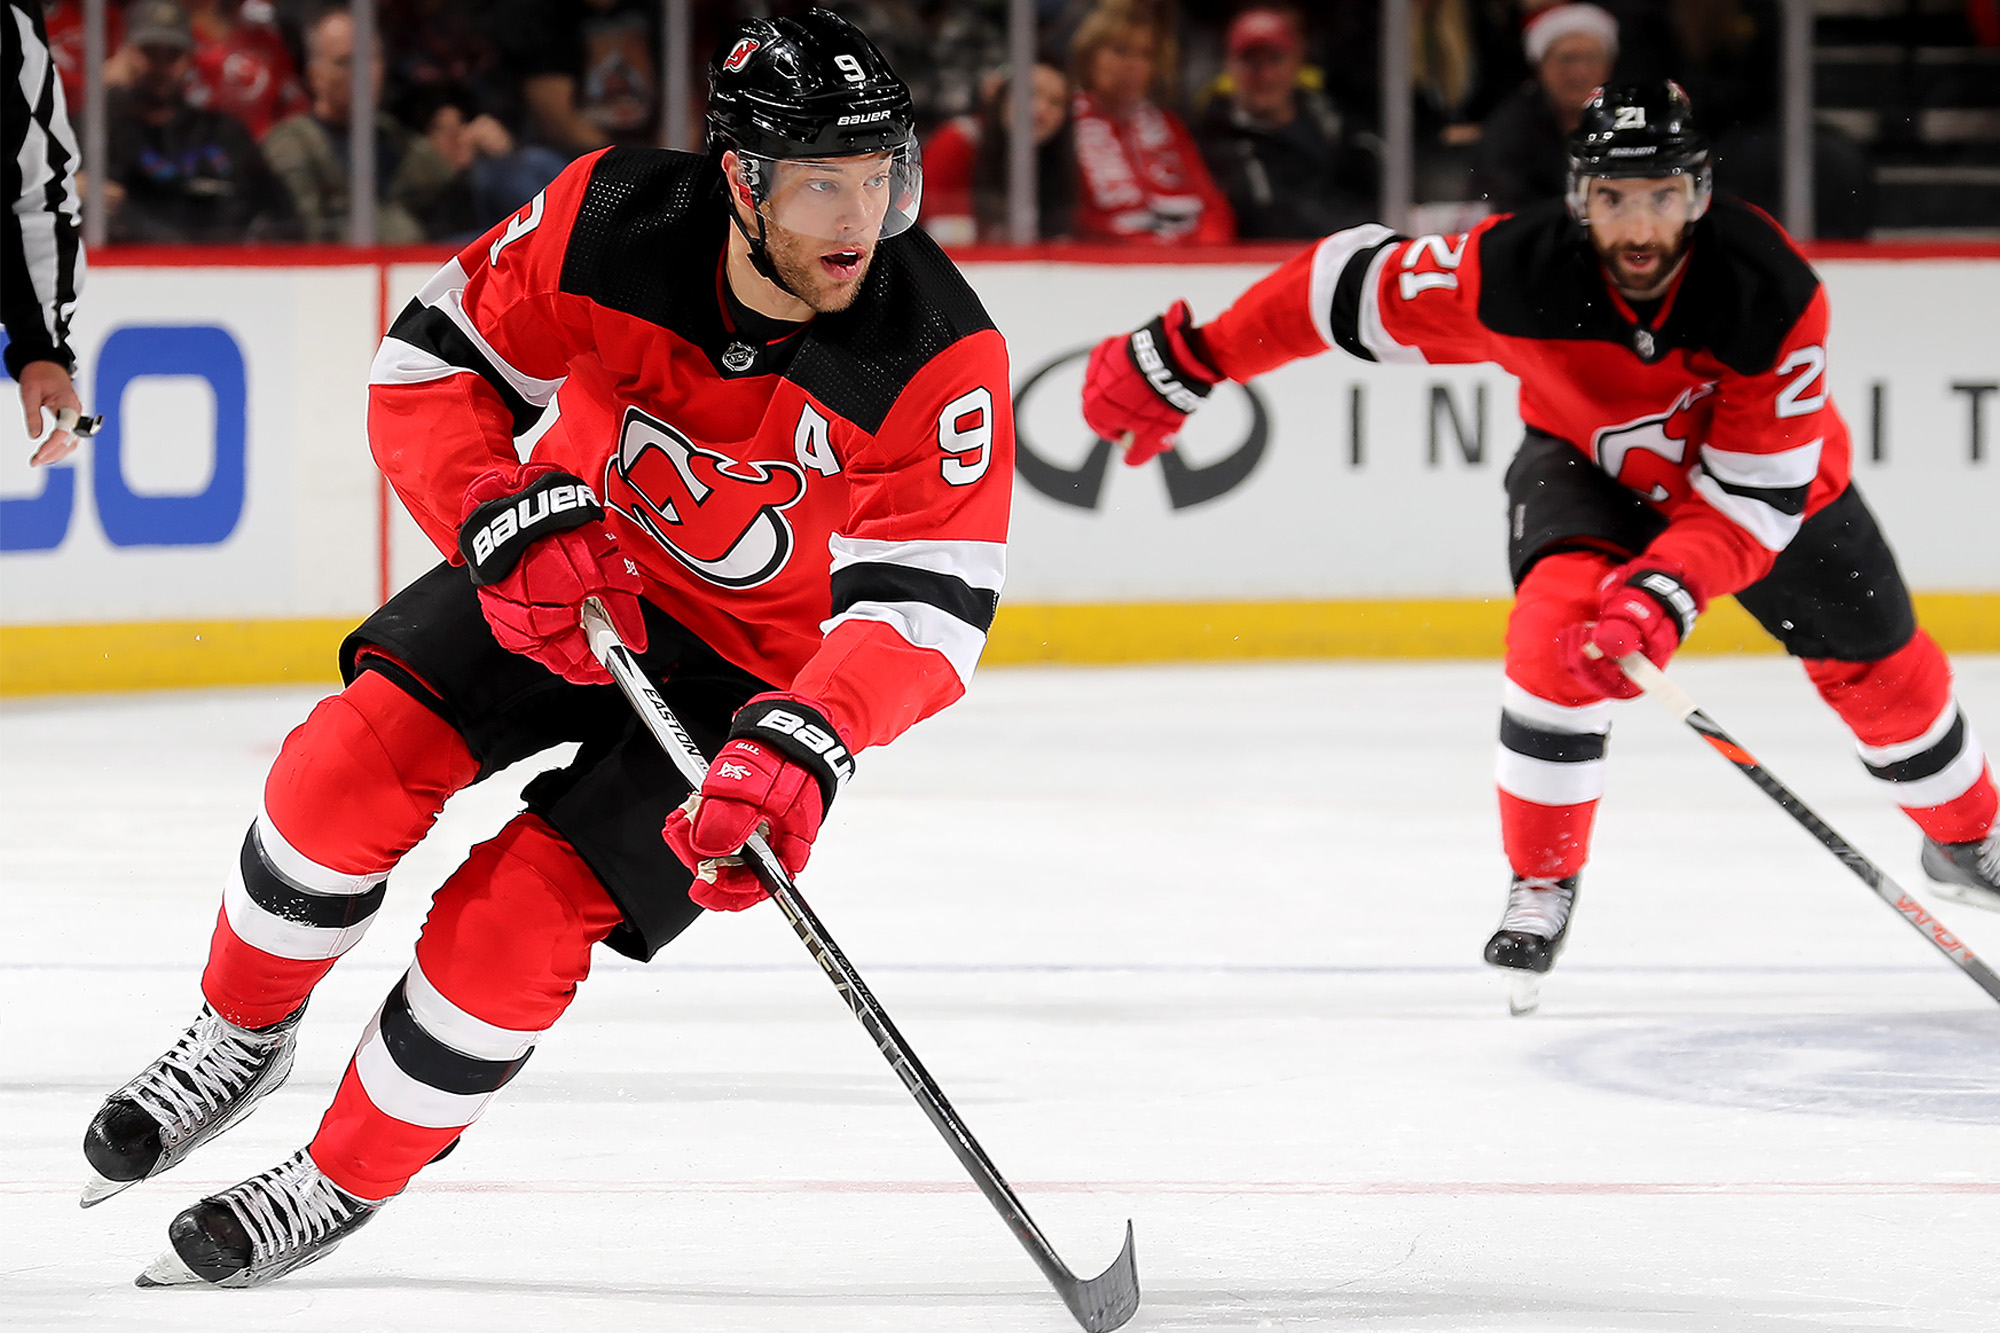 Devils Trade Taylor Hall To Coyotes In Long Awaited Deal